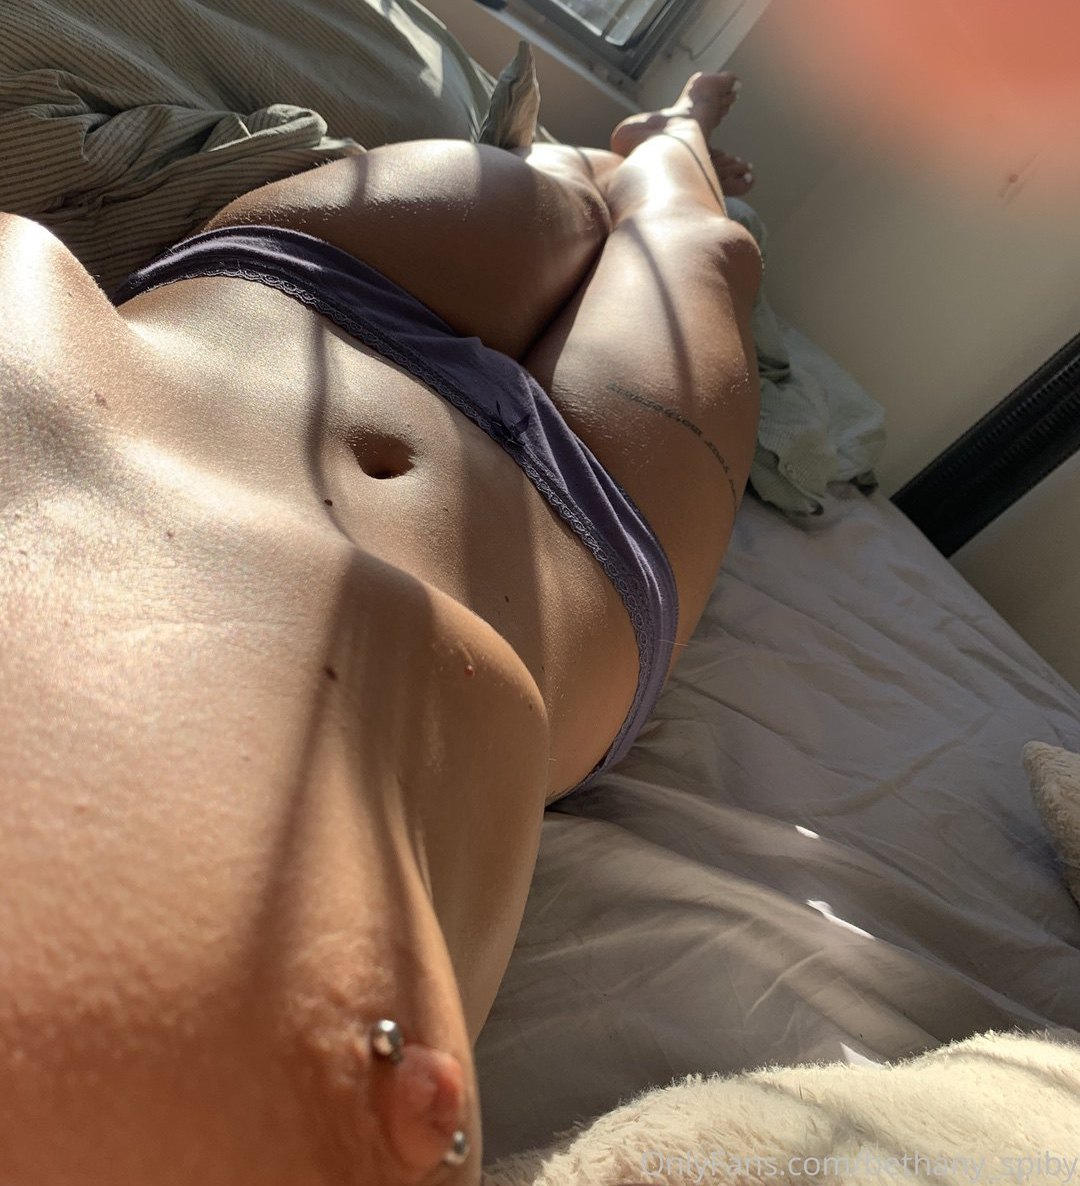 Bethany Spiby Bethany Spiby Onlyfans Nudes Leaks 0013